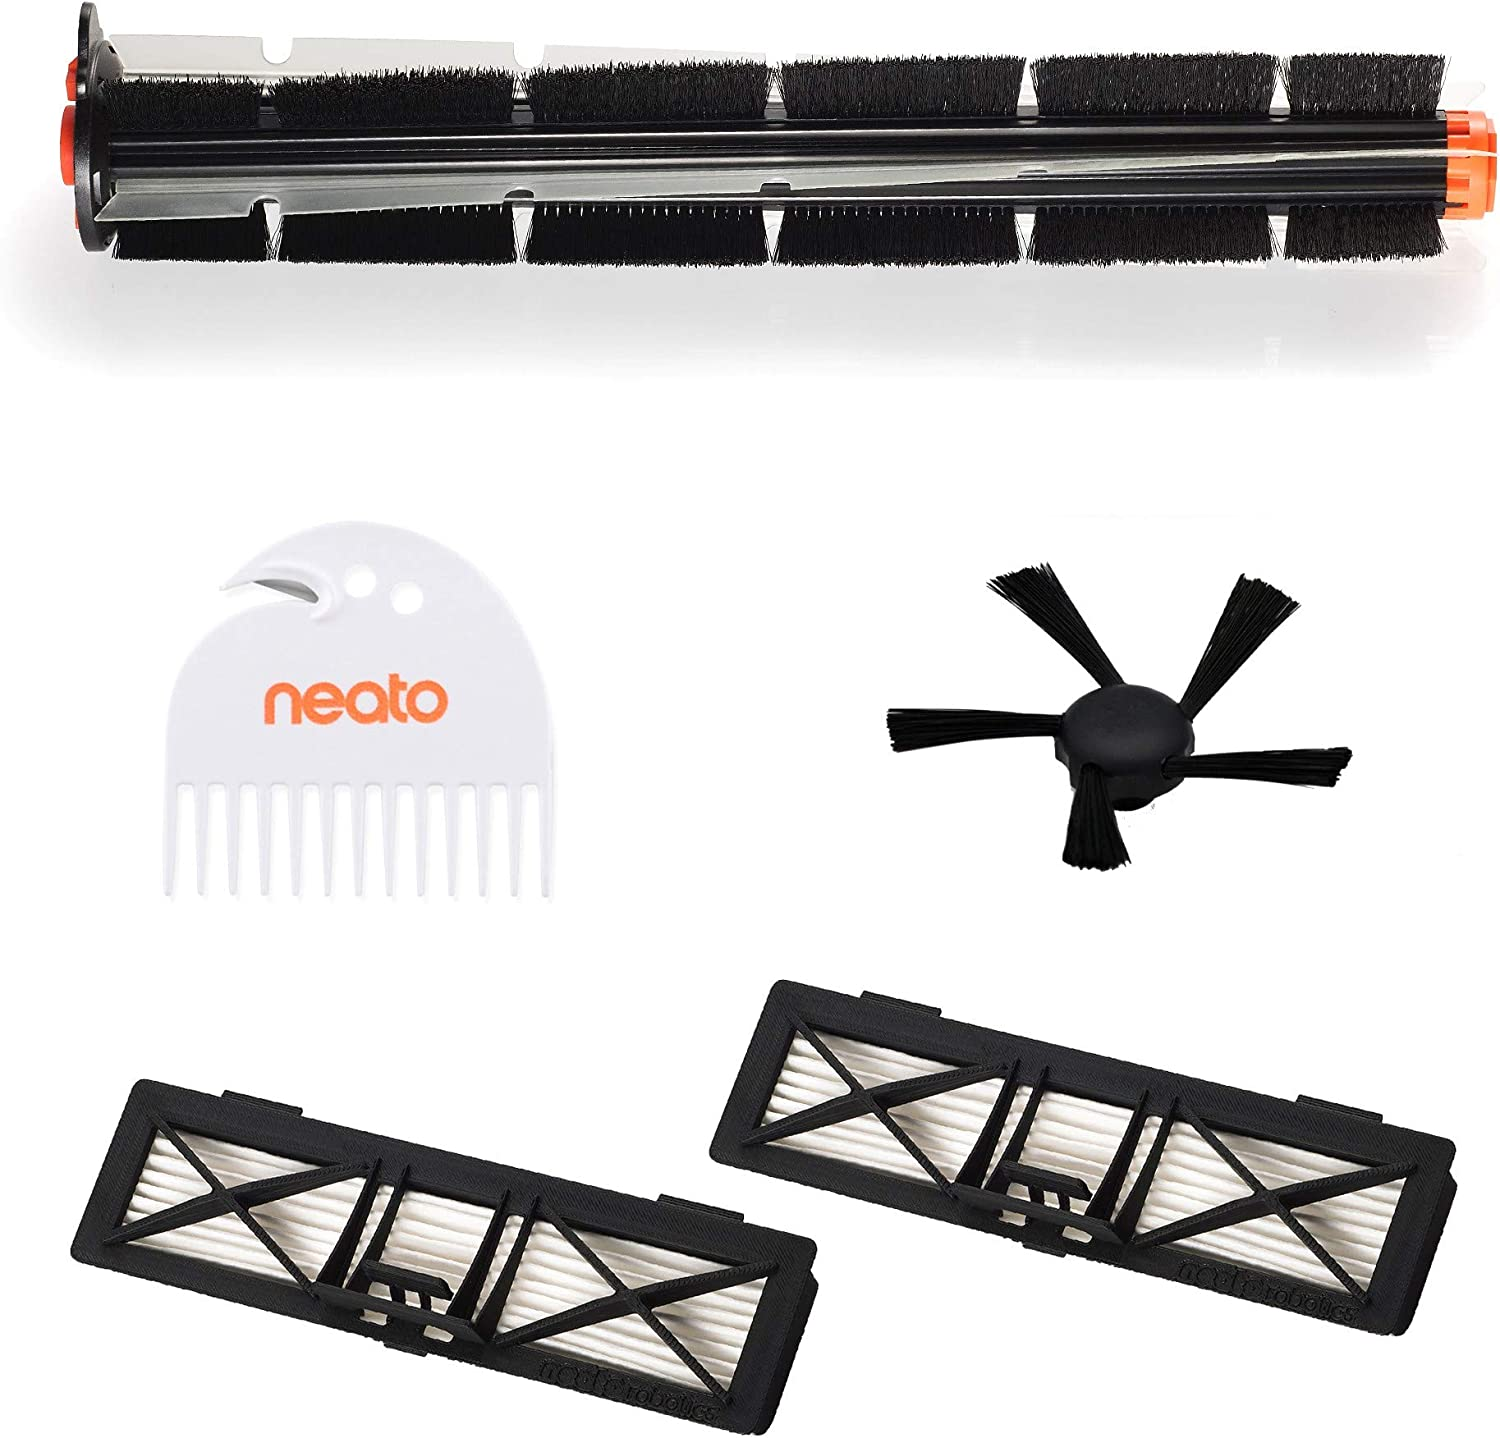 Neato Robotics Neato Replacement Kit, Normal, Black